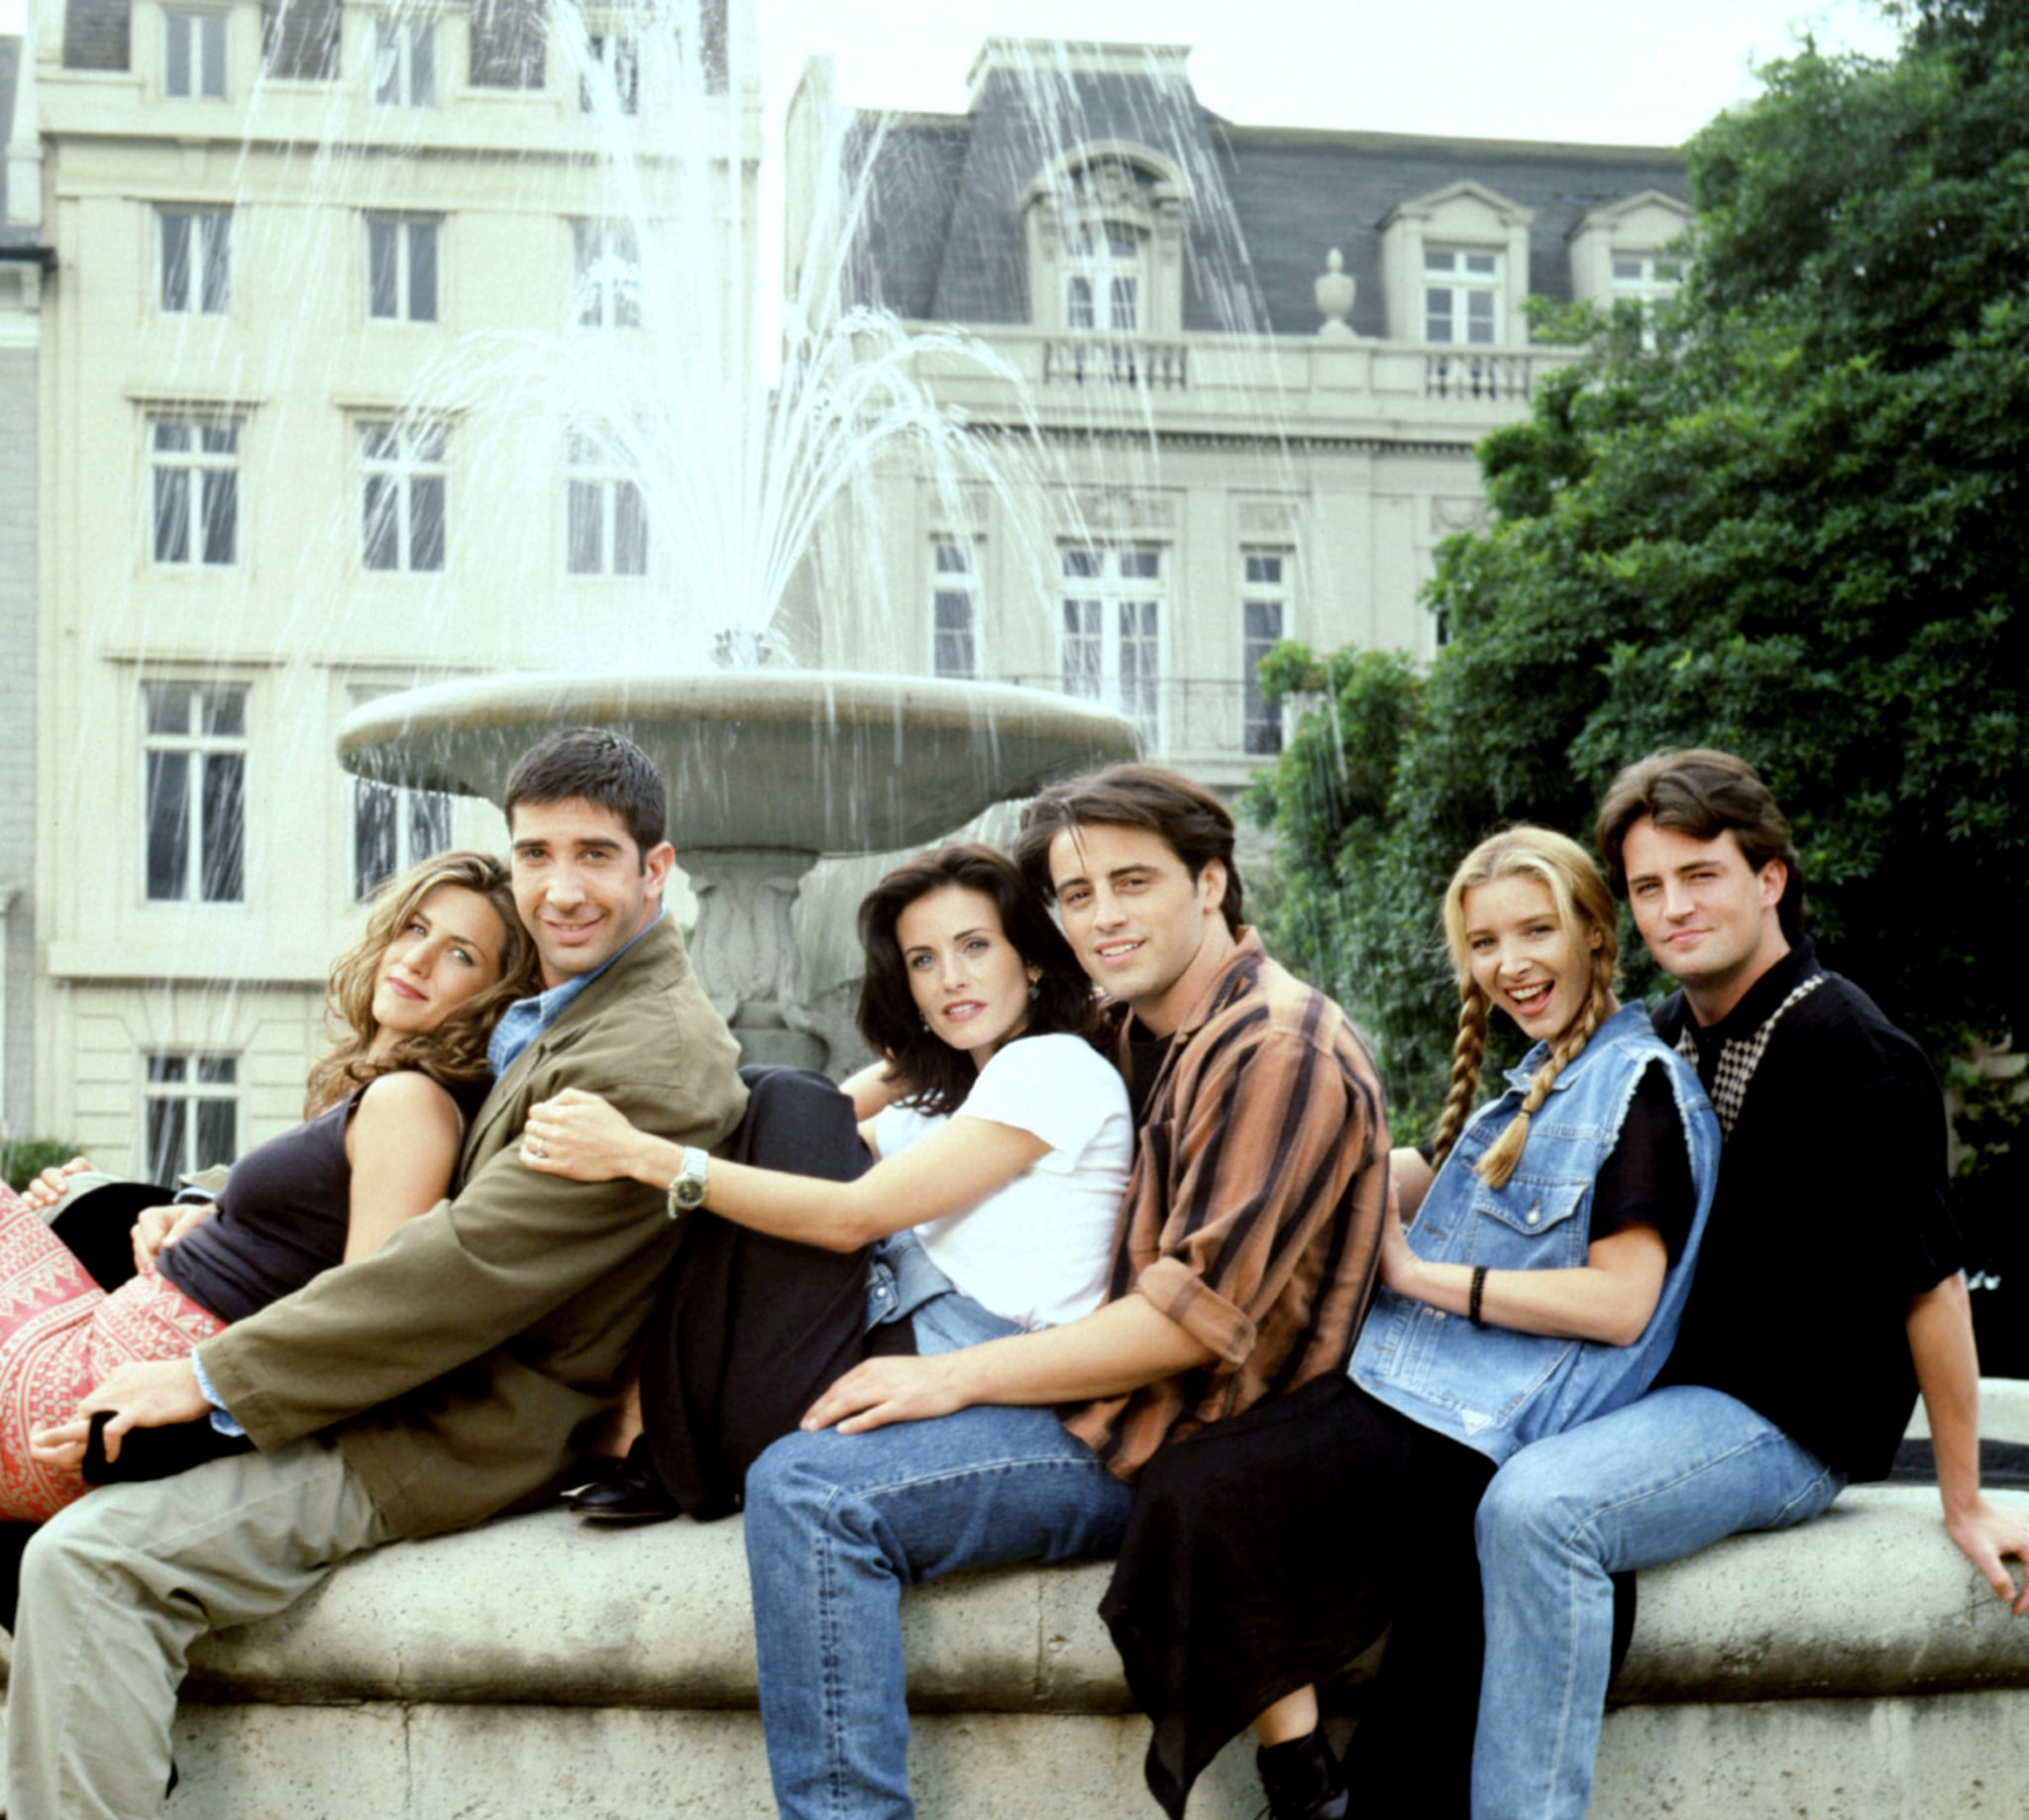 """A Friends Reunion Special Is Still Up in the Air, but """"There's Interest All the Way Around"""""""